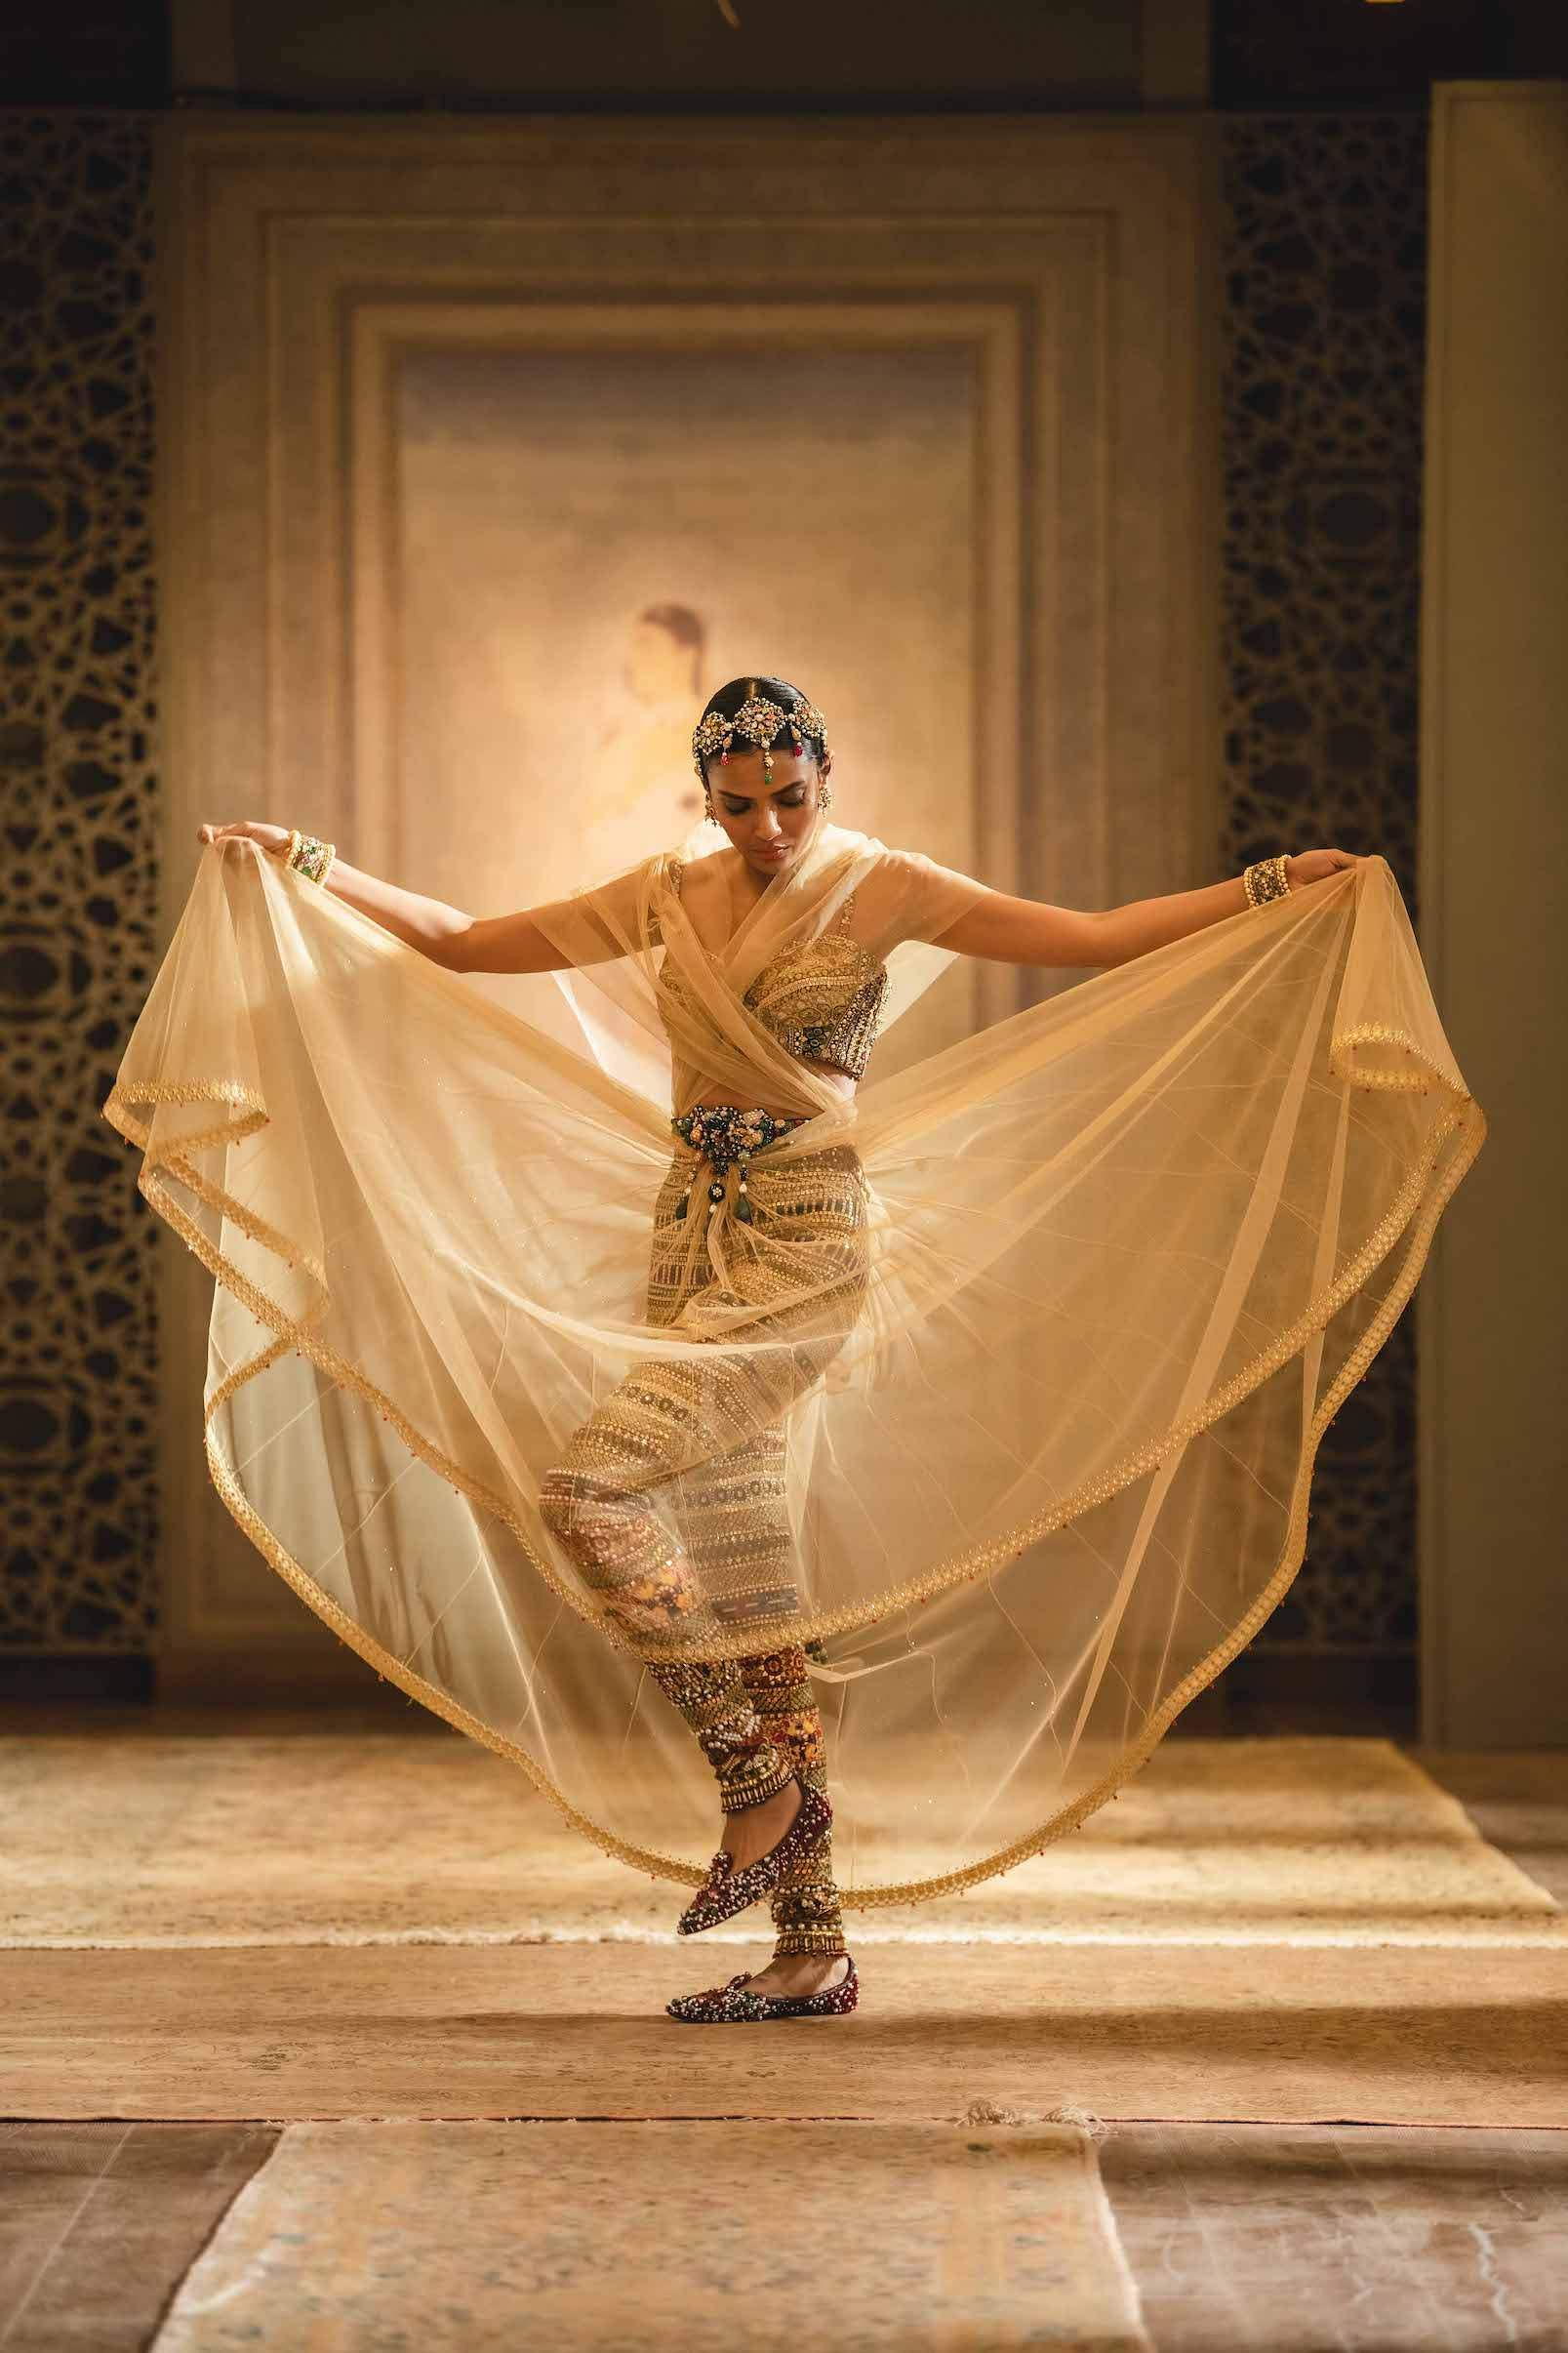 Zardosi-embroidered leggings and pearl-and-stone-embroidered bustier worn with a voluminious skirt and shirred drape